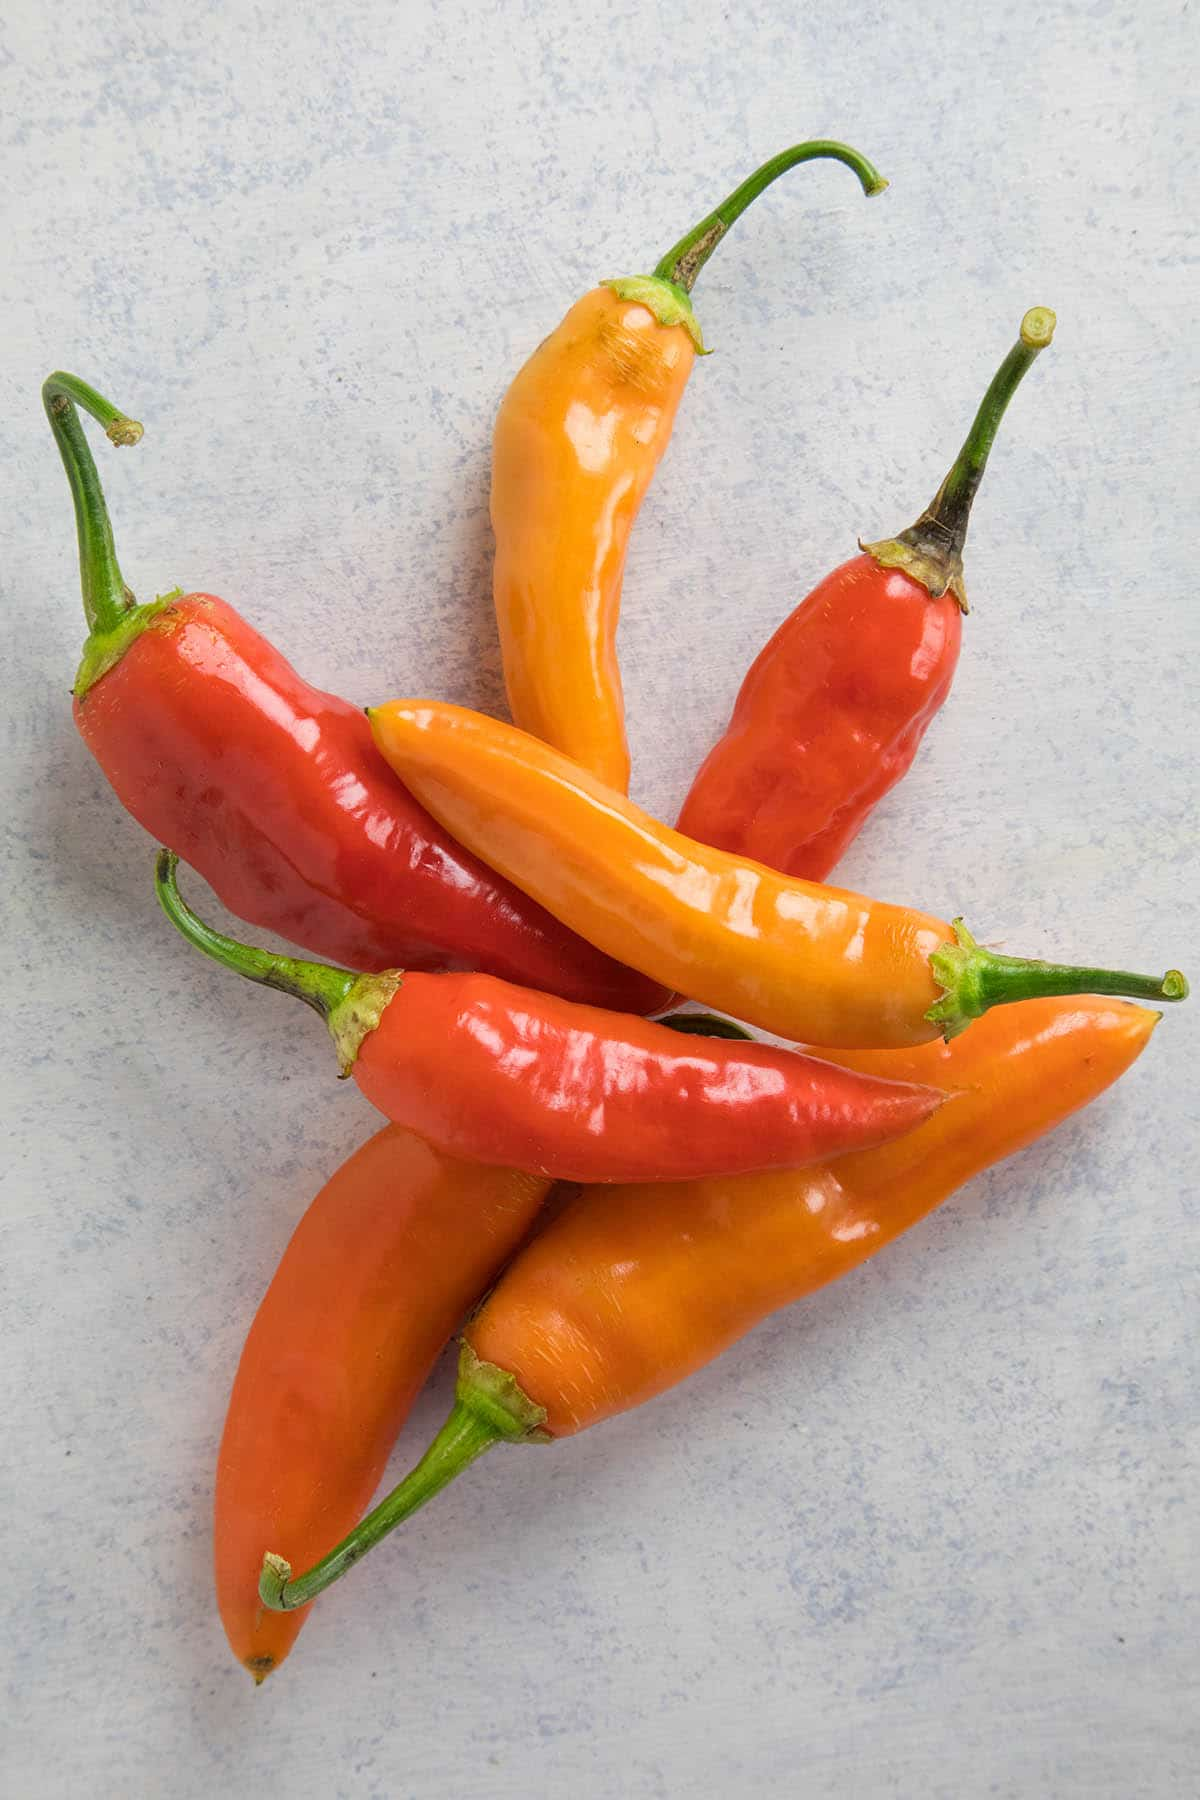 Aji Chili Peppers